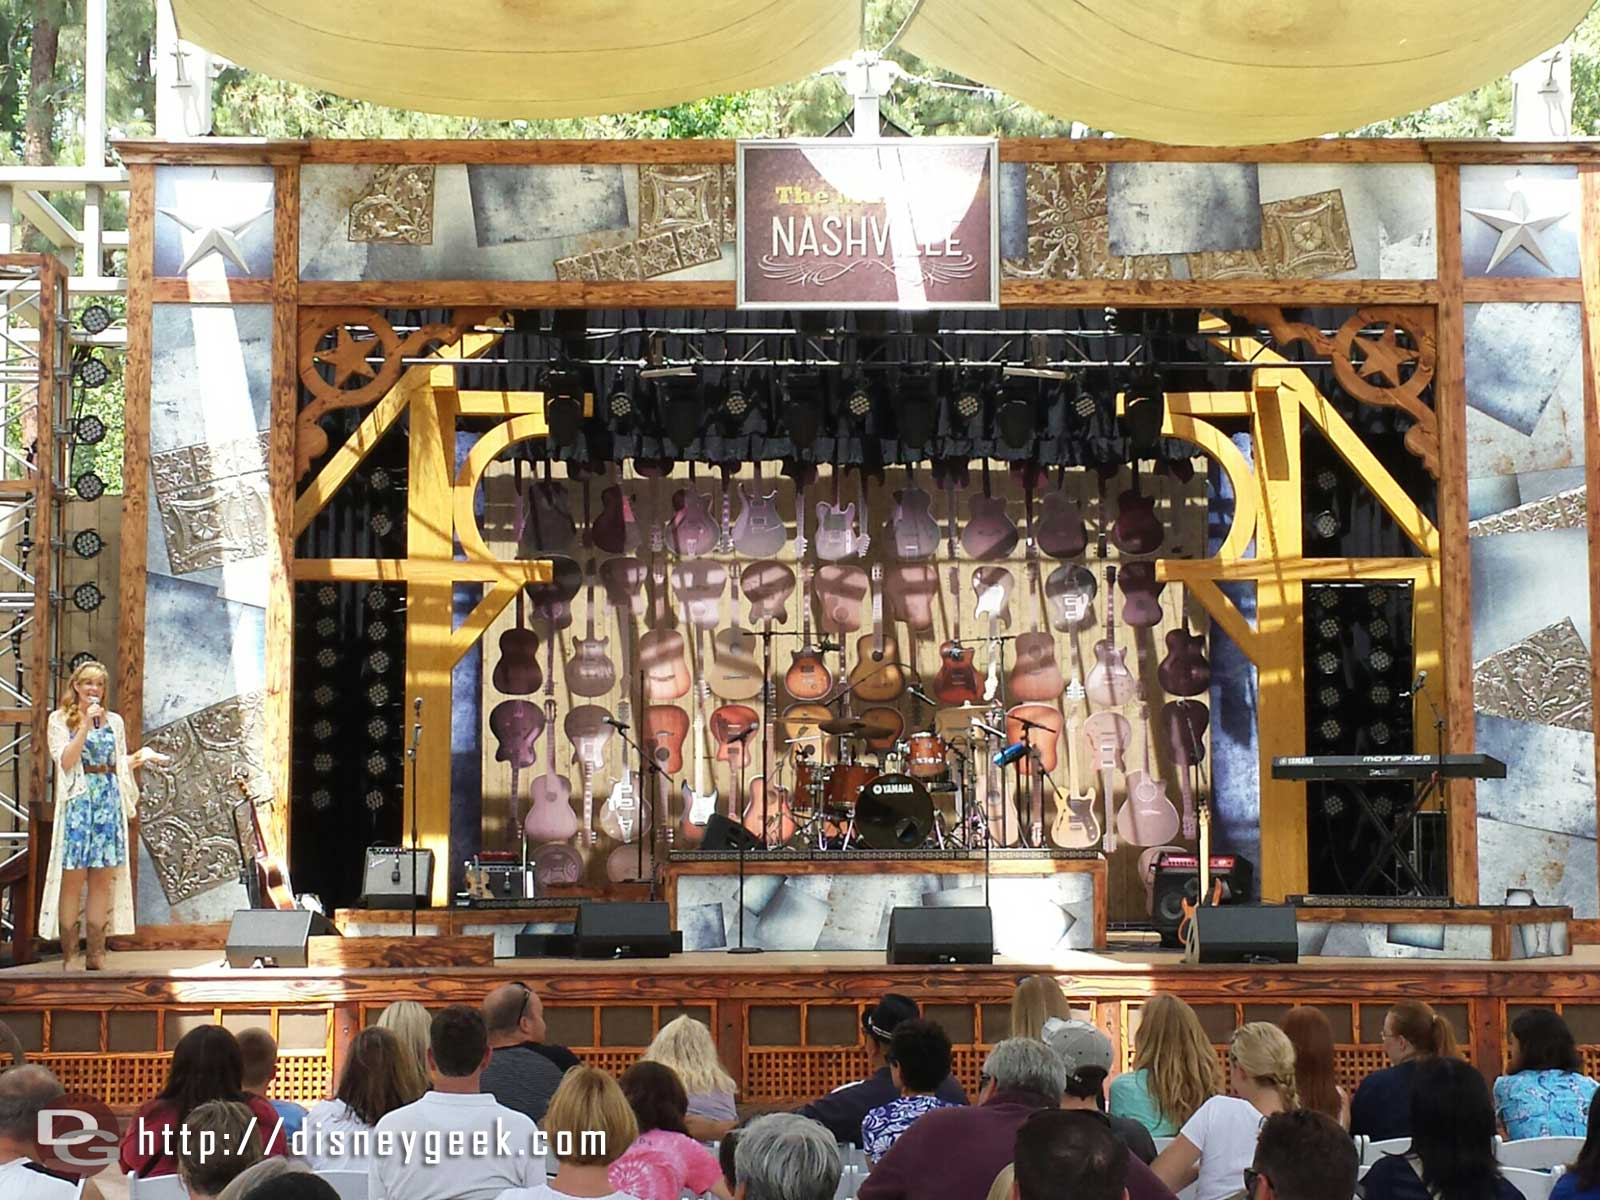 The Music of Nashville has moved into the Big Thunder Ranch Jamboree